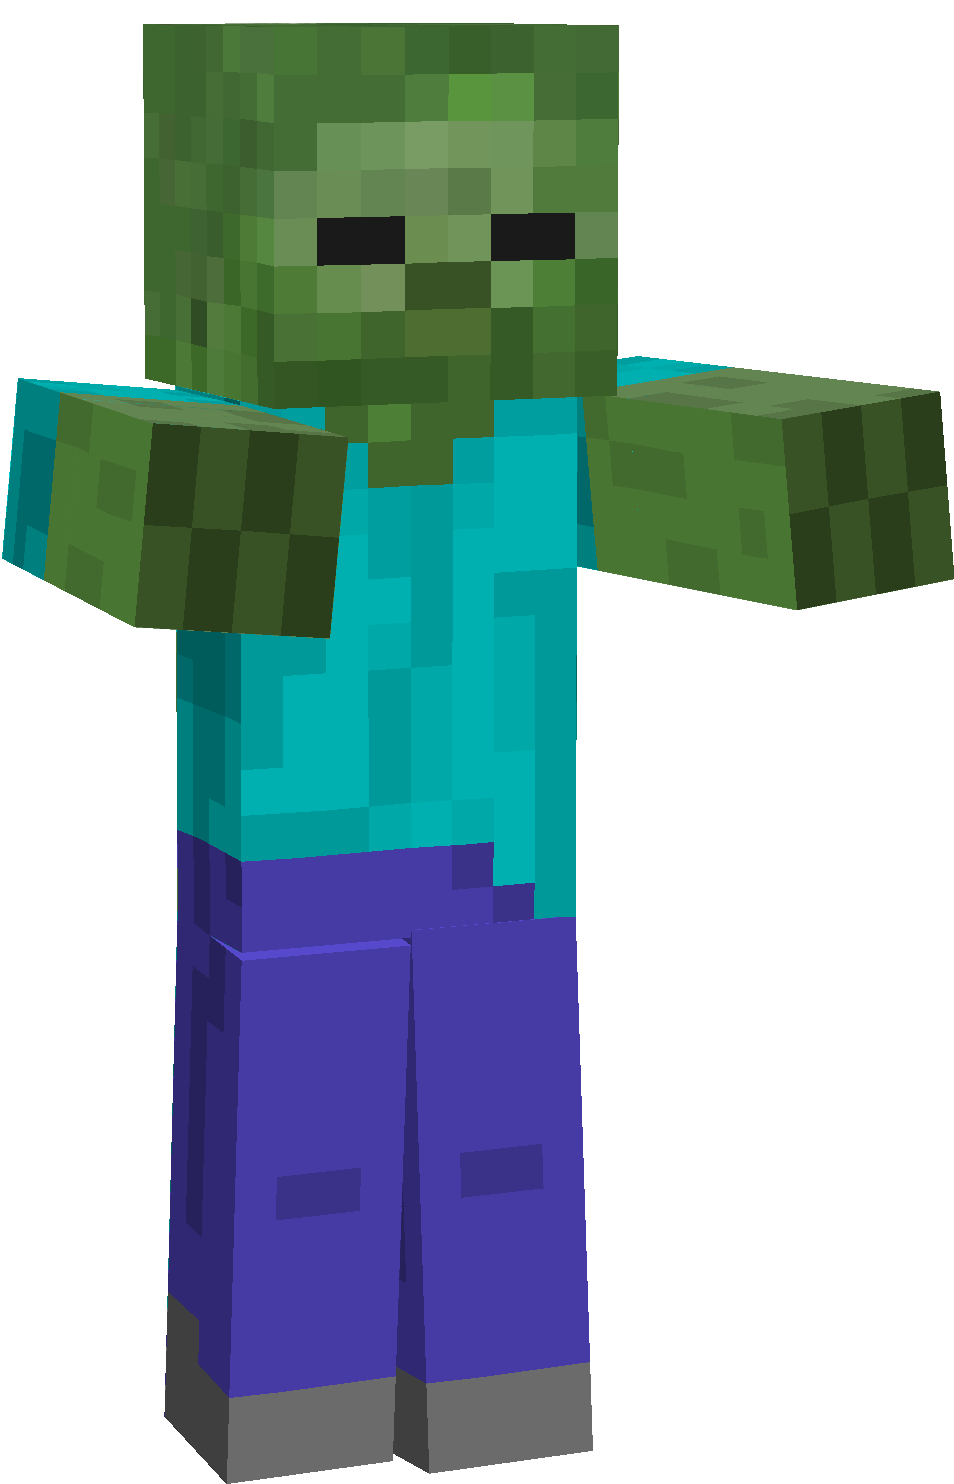 Minecraft clipart mobs. Zombi pinterest craft and